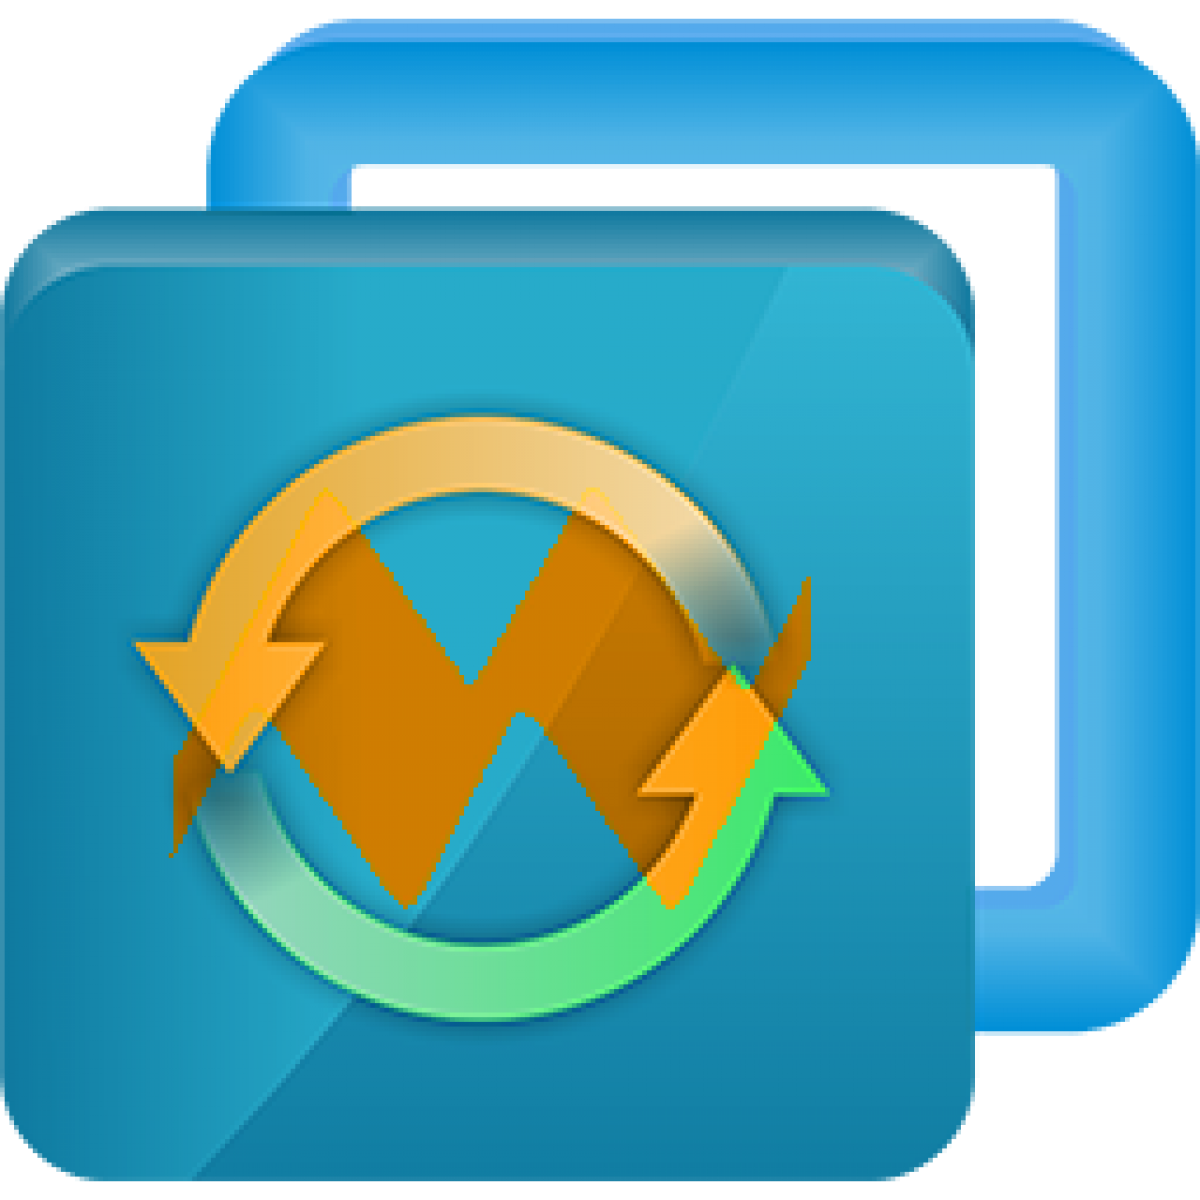 AOMEI Backupper Crack 6.5.1 With License Key [All Editions]